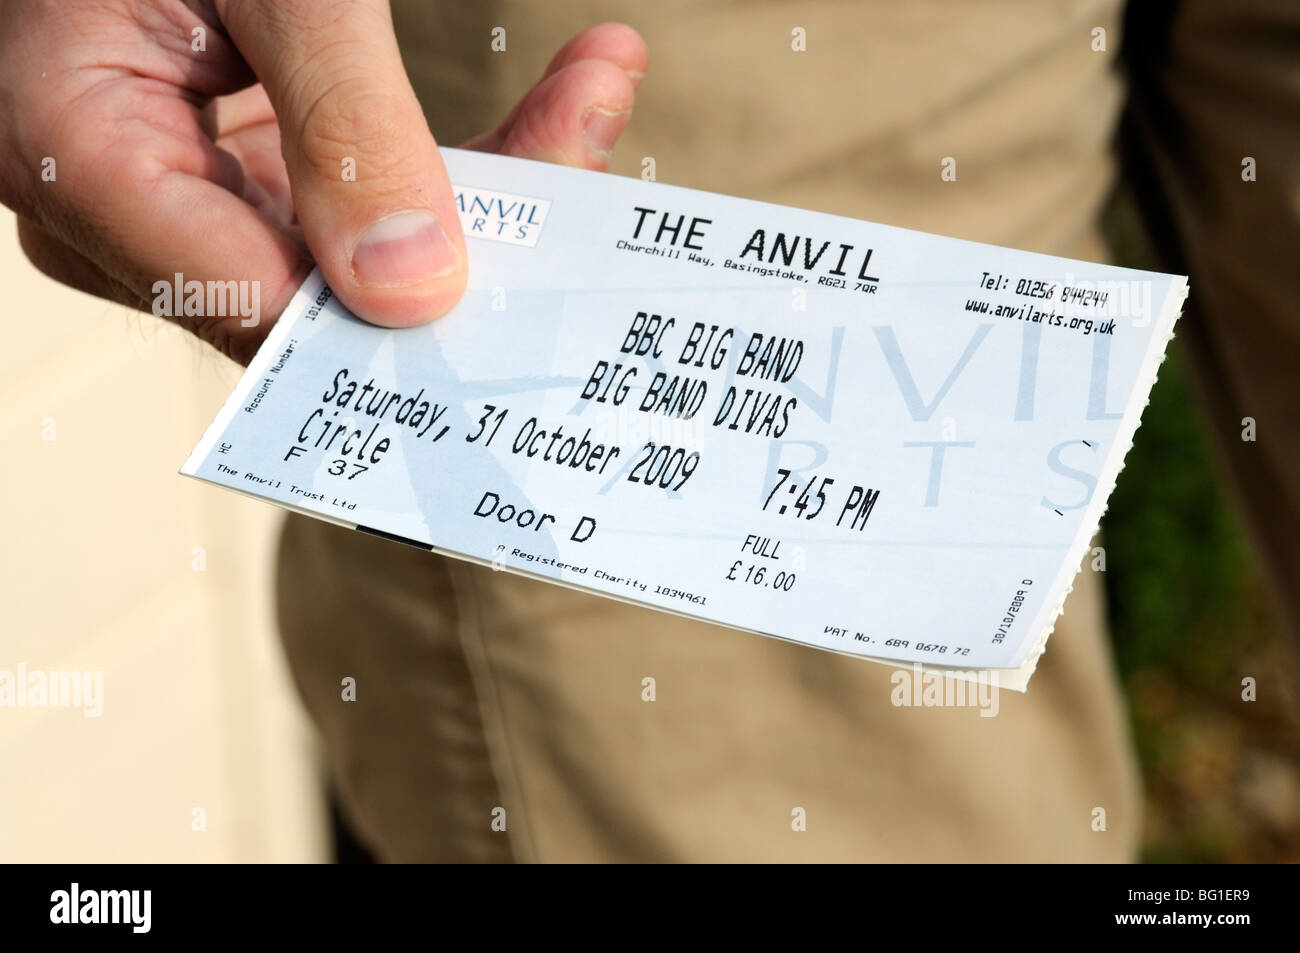 hand holding a theatre admission ticket for entry to BBC BIG Band concert at The Anvil Basingstoke Hampshire England - Stock Image